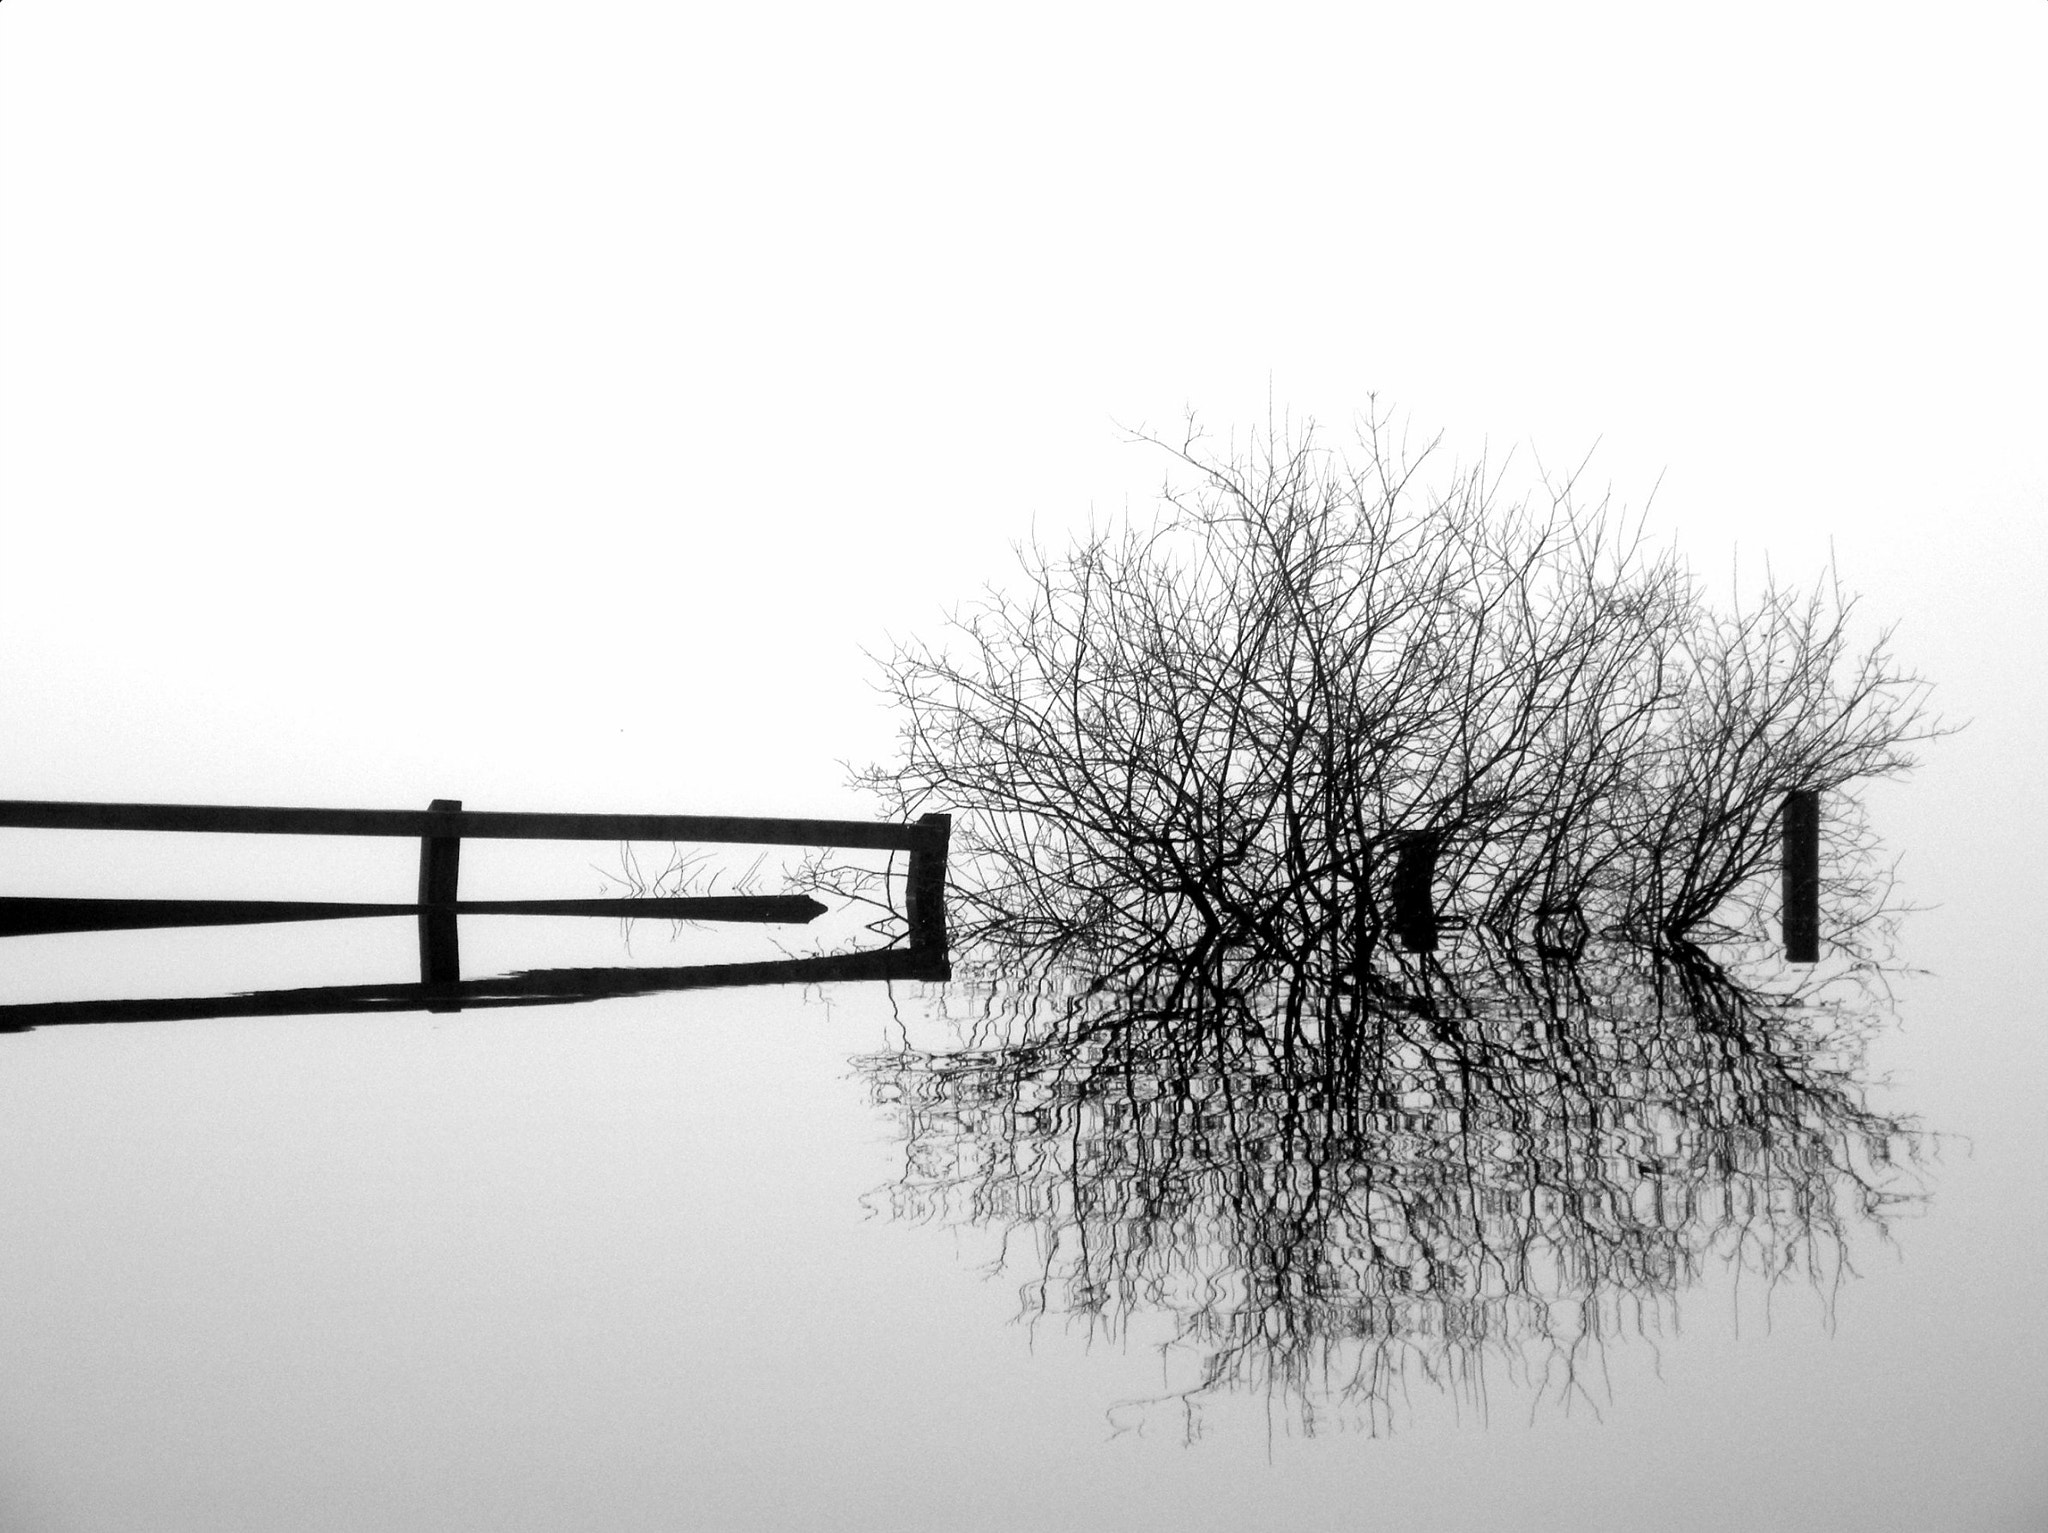 Photograph Reflections at Rivington by Lily Wren on 500px